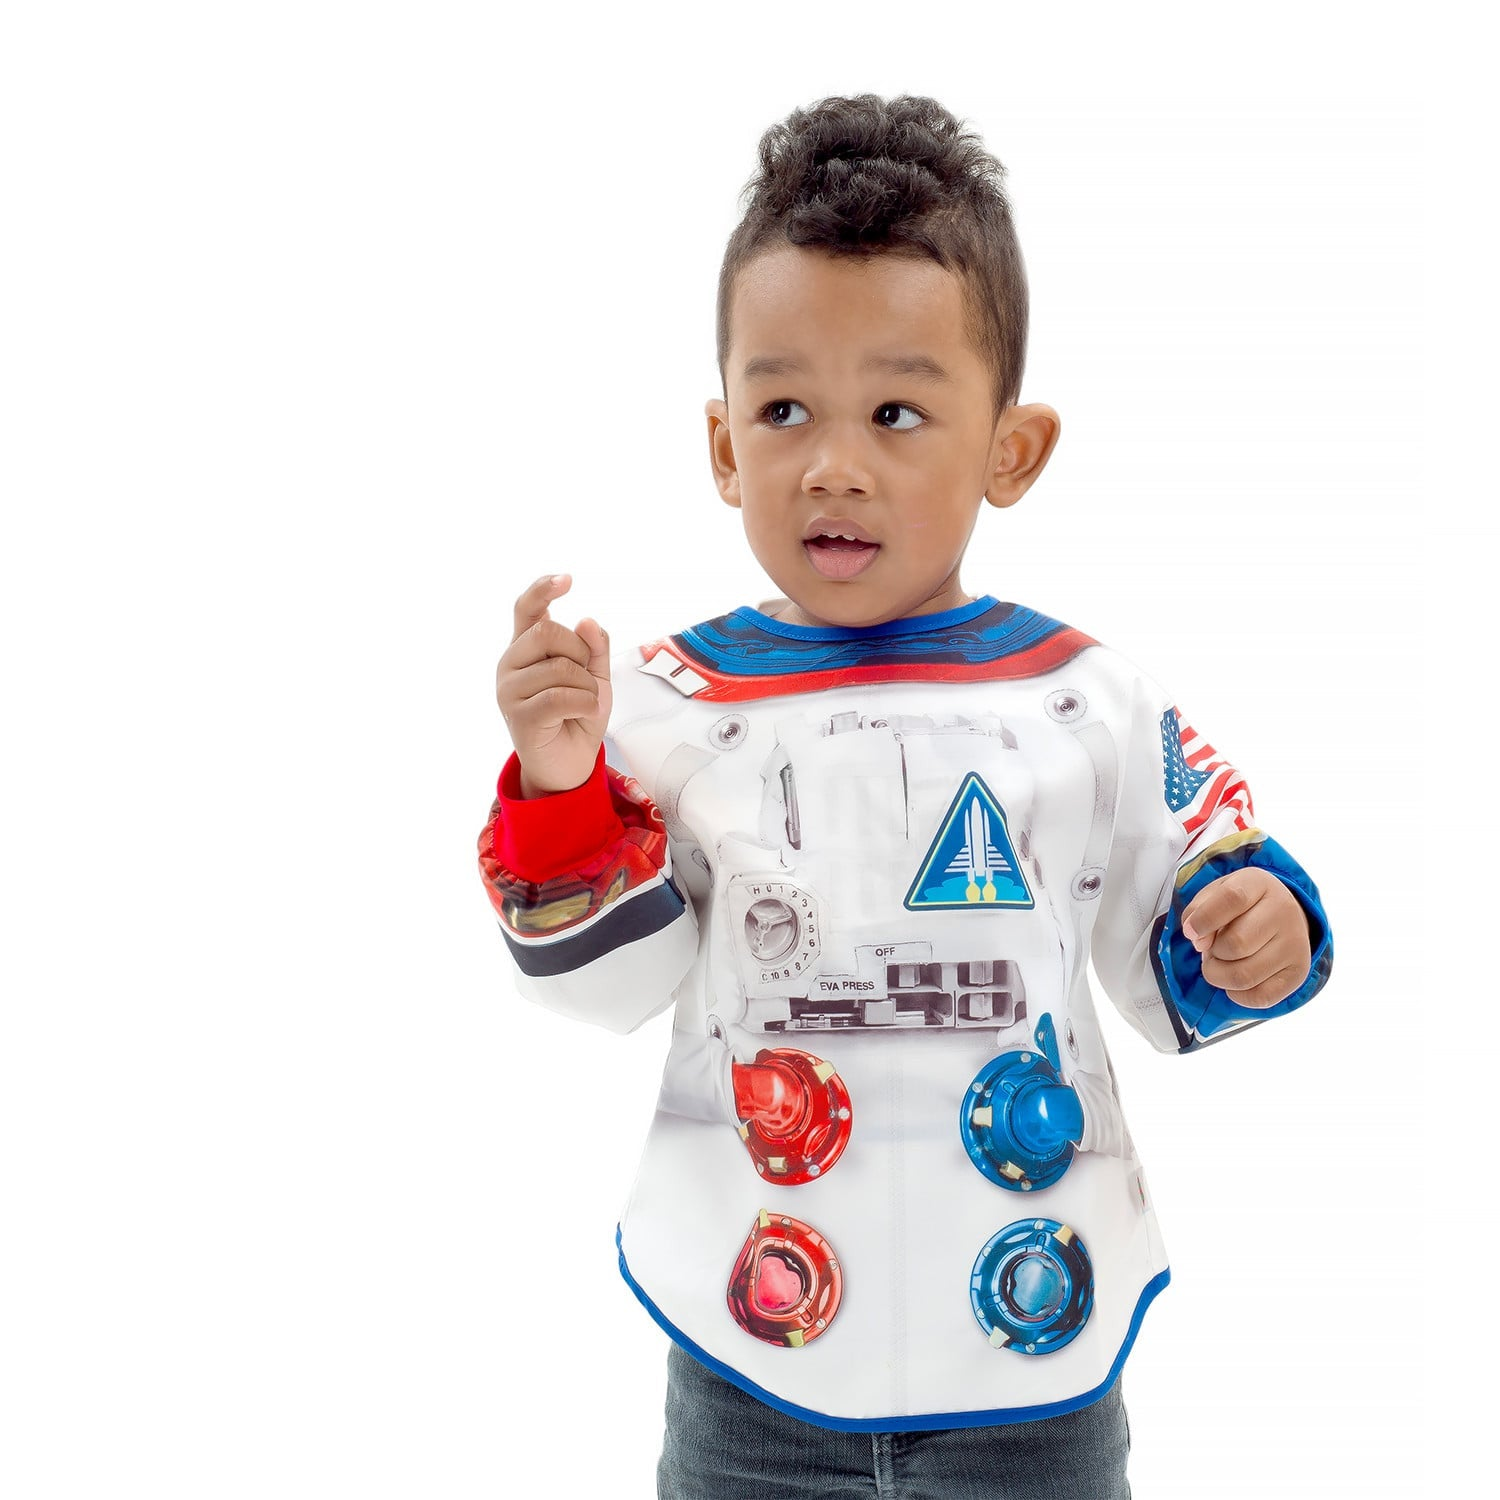 Astronaut - Suitables Role Play Bib - Mixed Pears  - 1